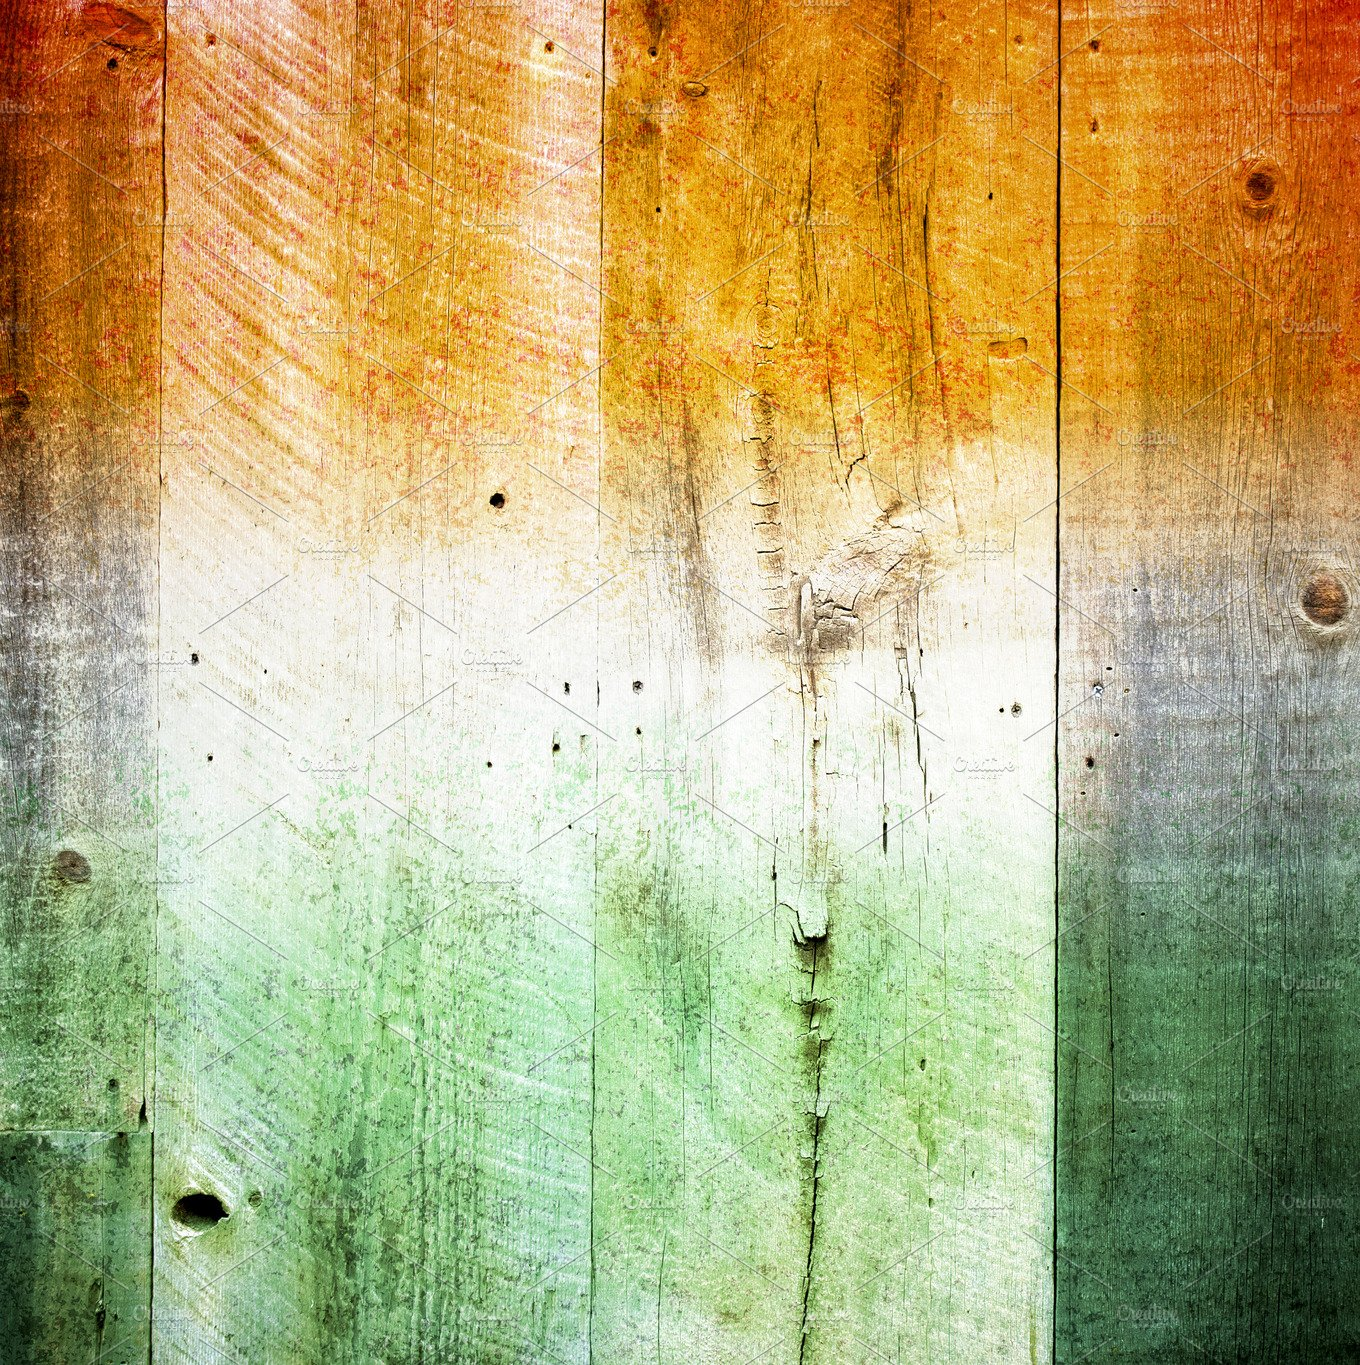 Color Hut Textures: Abstract Three Color Wooden Texture